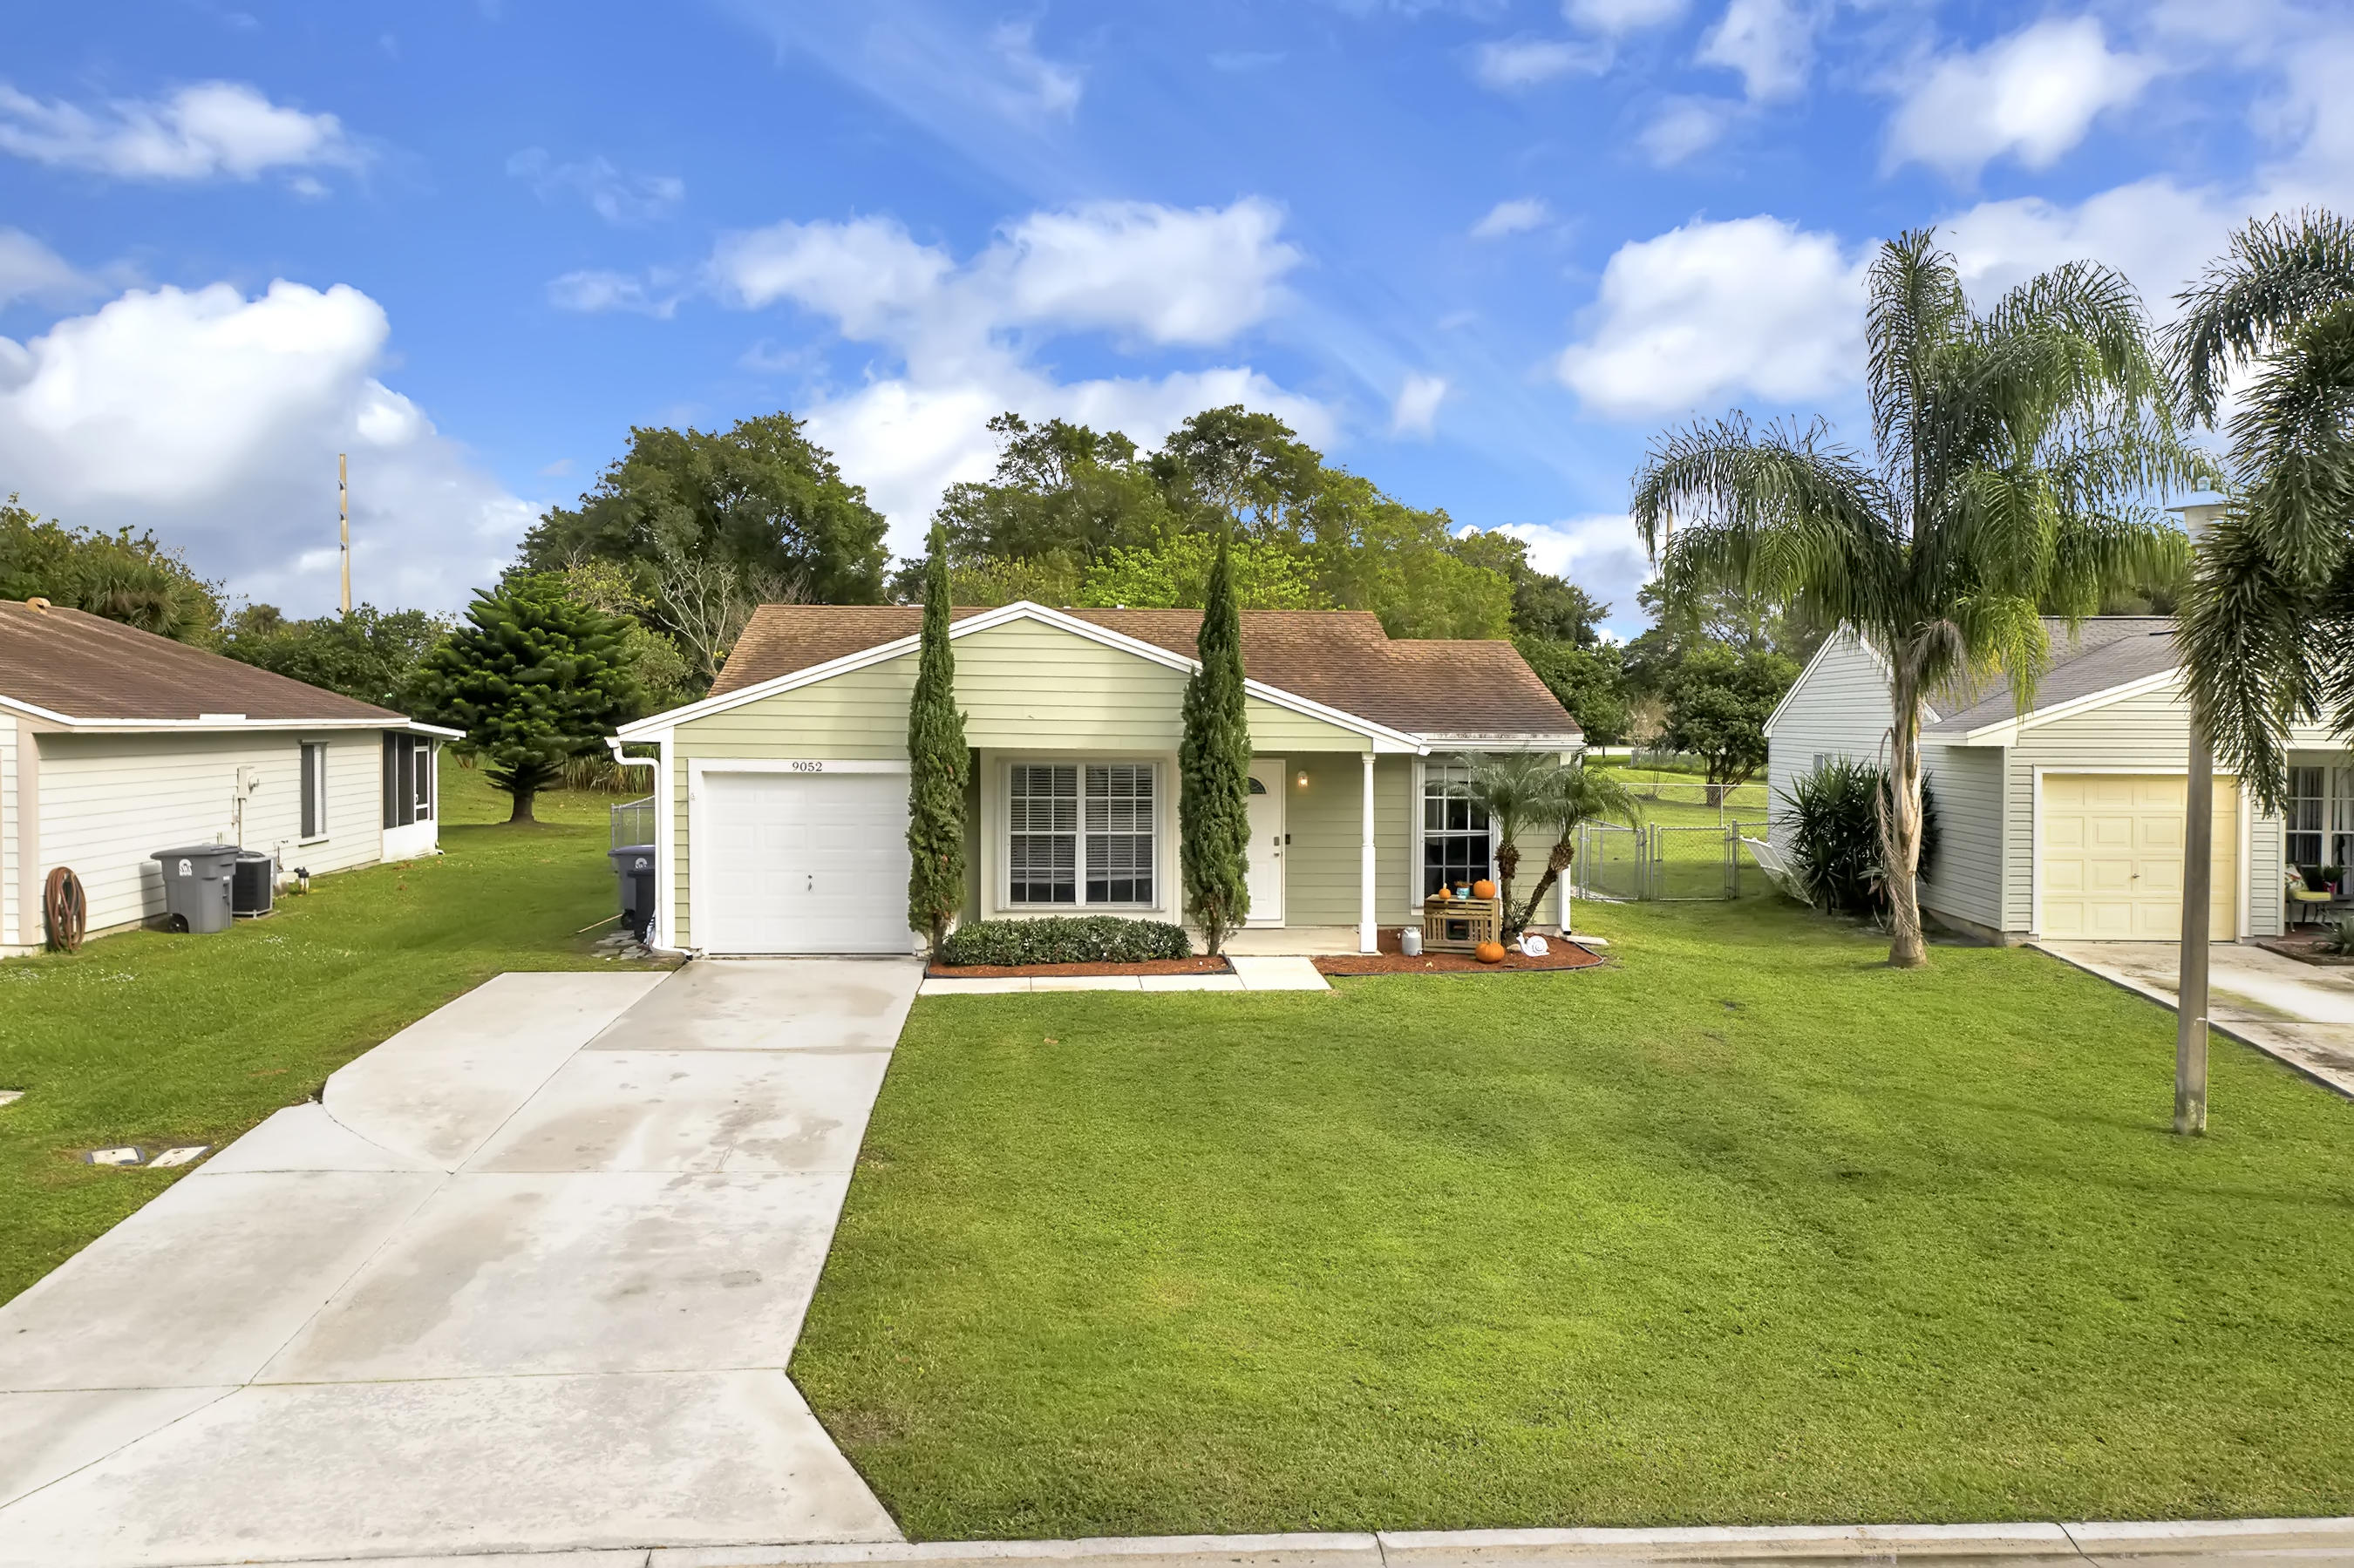 Home for sale in Waterchase Boynton Beach Florida